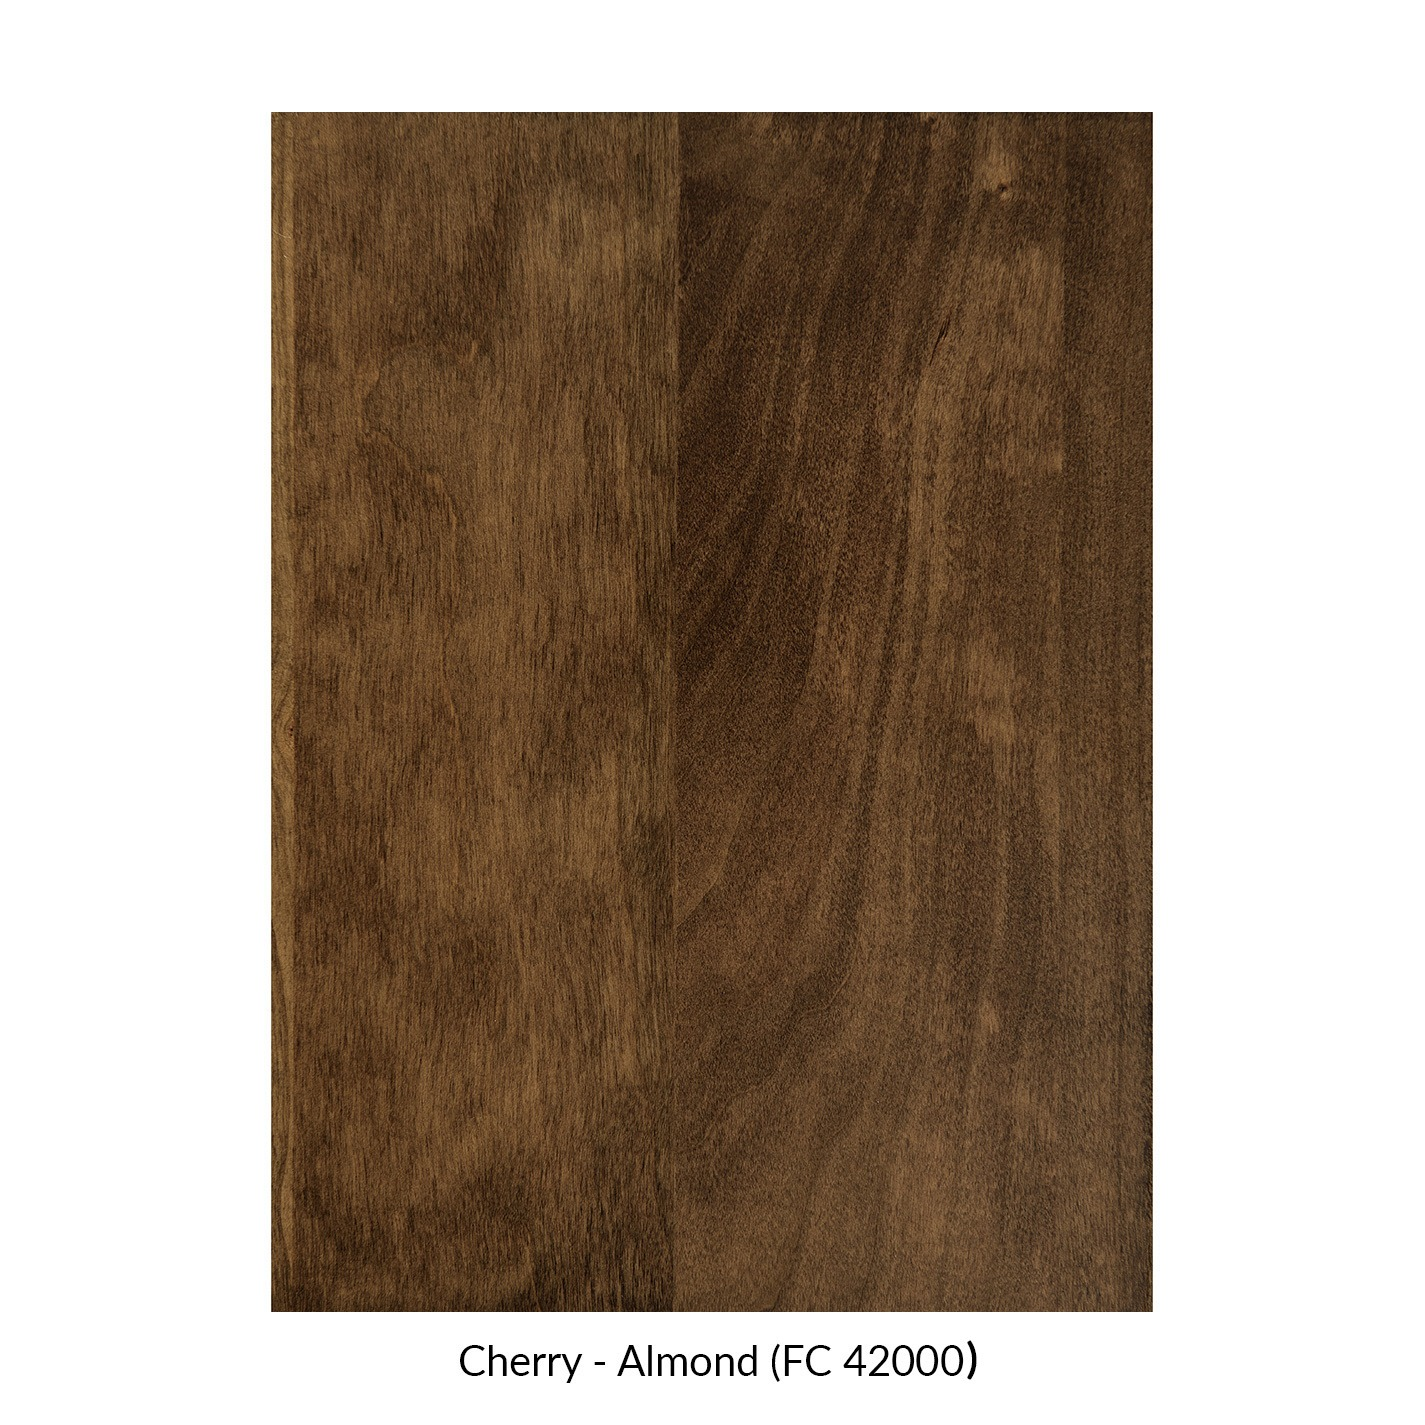 spectrum-cherry-almond-fc-42000.jpg